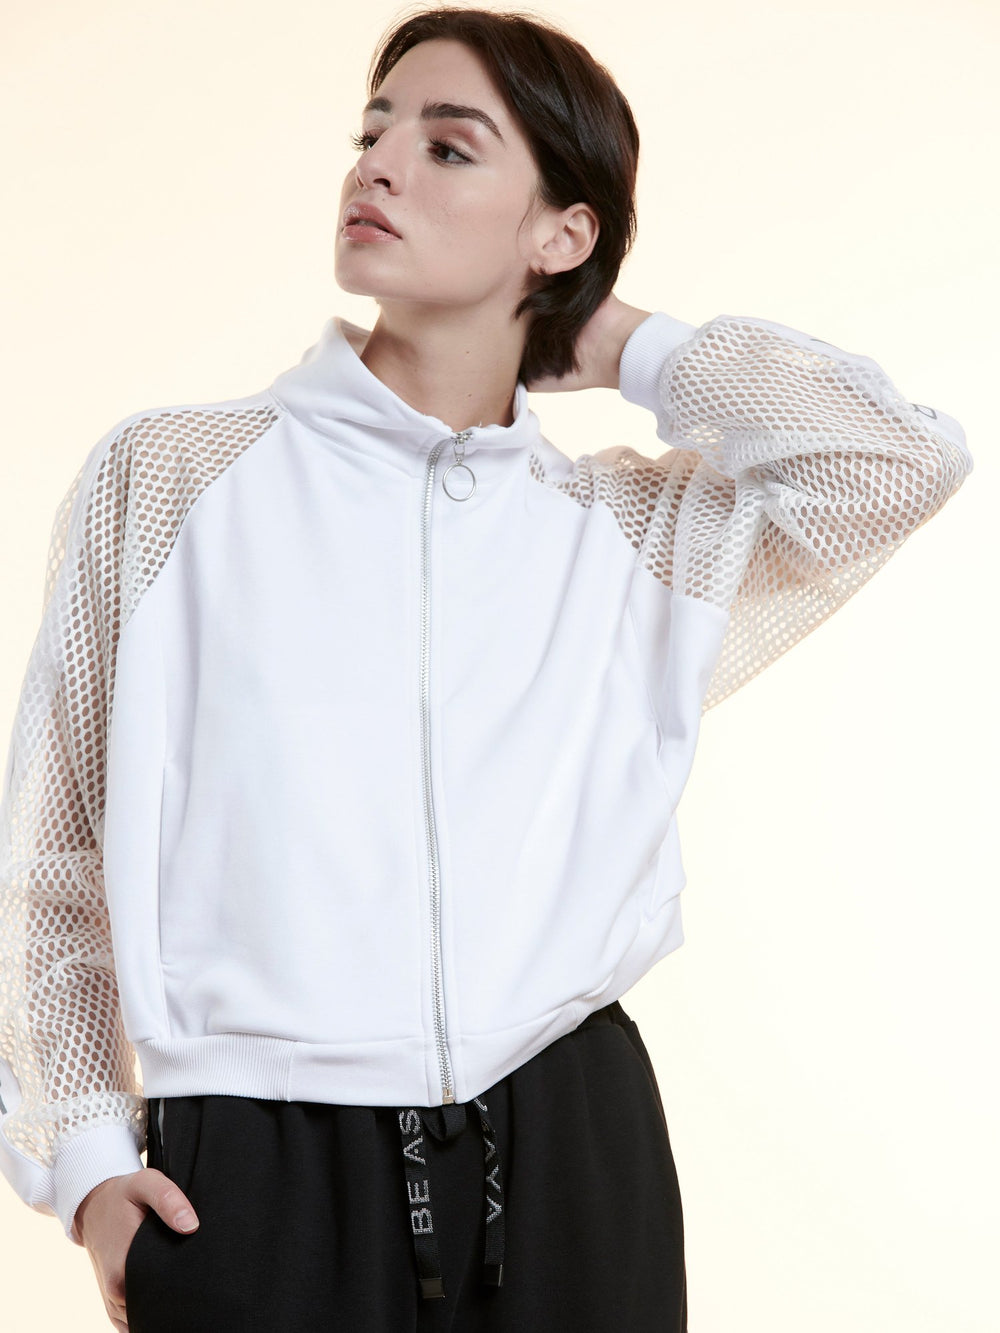 BAYA - Network Jacket - White BY0028-WHT-OS-F